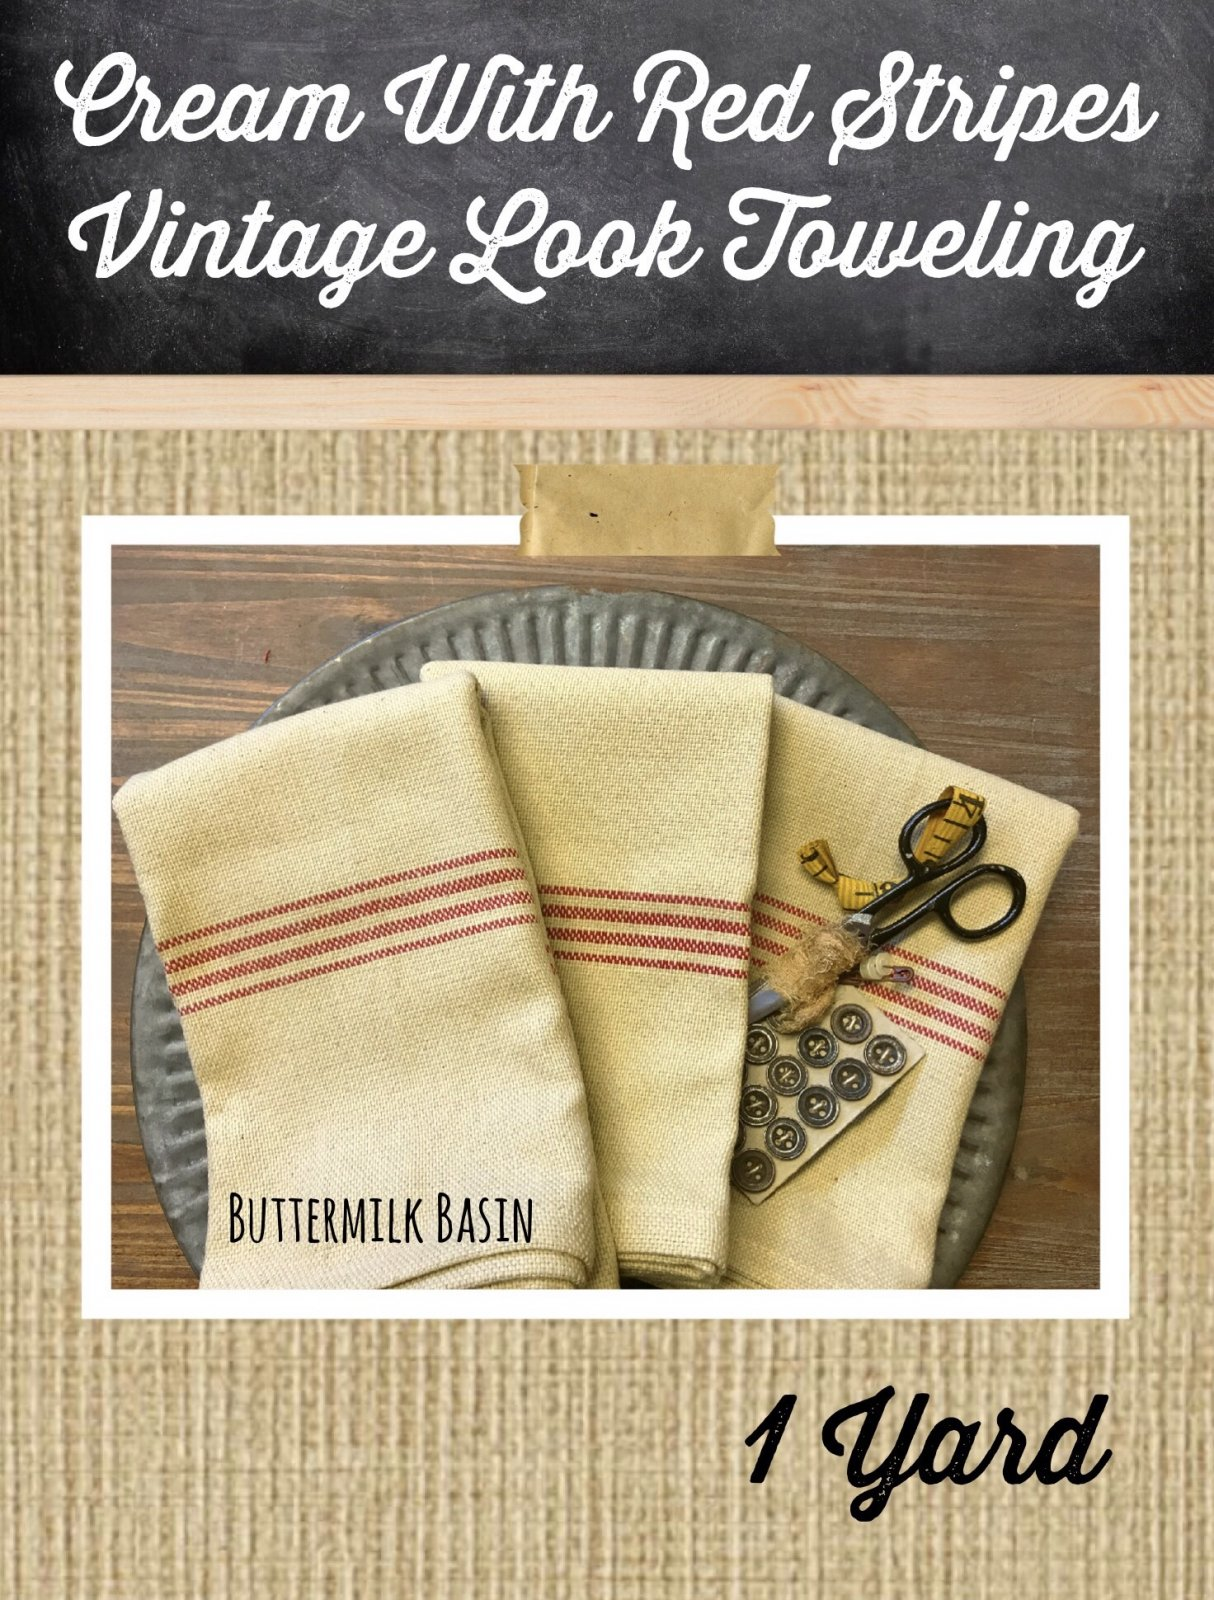 Cream with Red Stripes Vintage Look Toweling